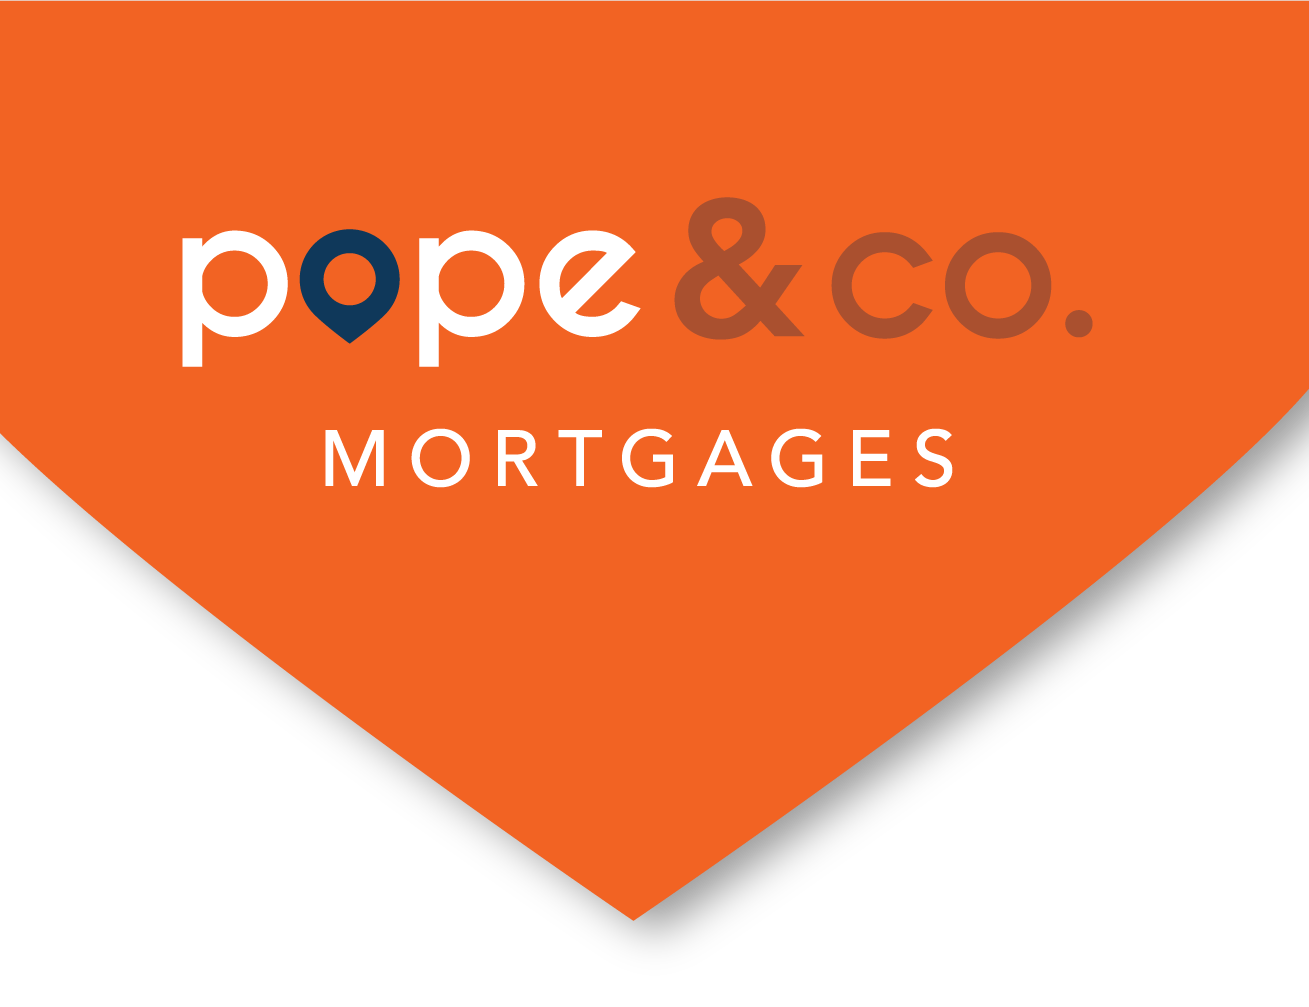 Pope & Co Mortgages